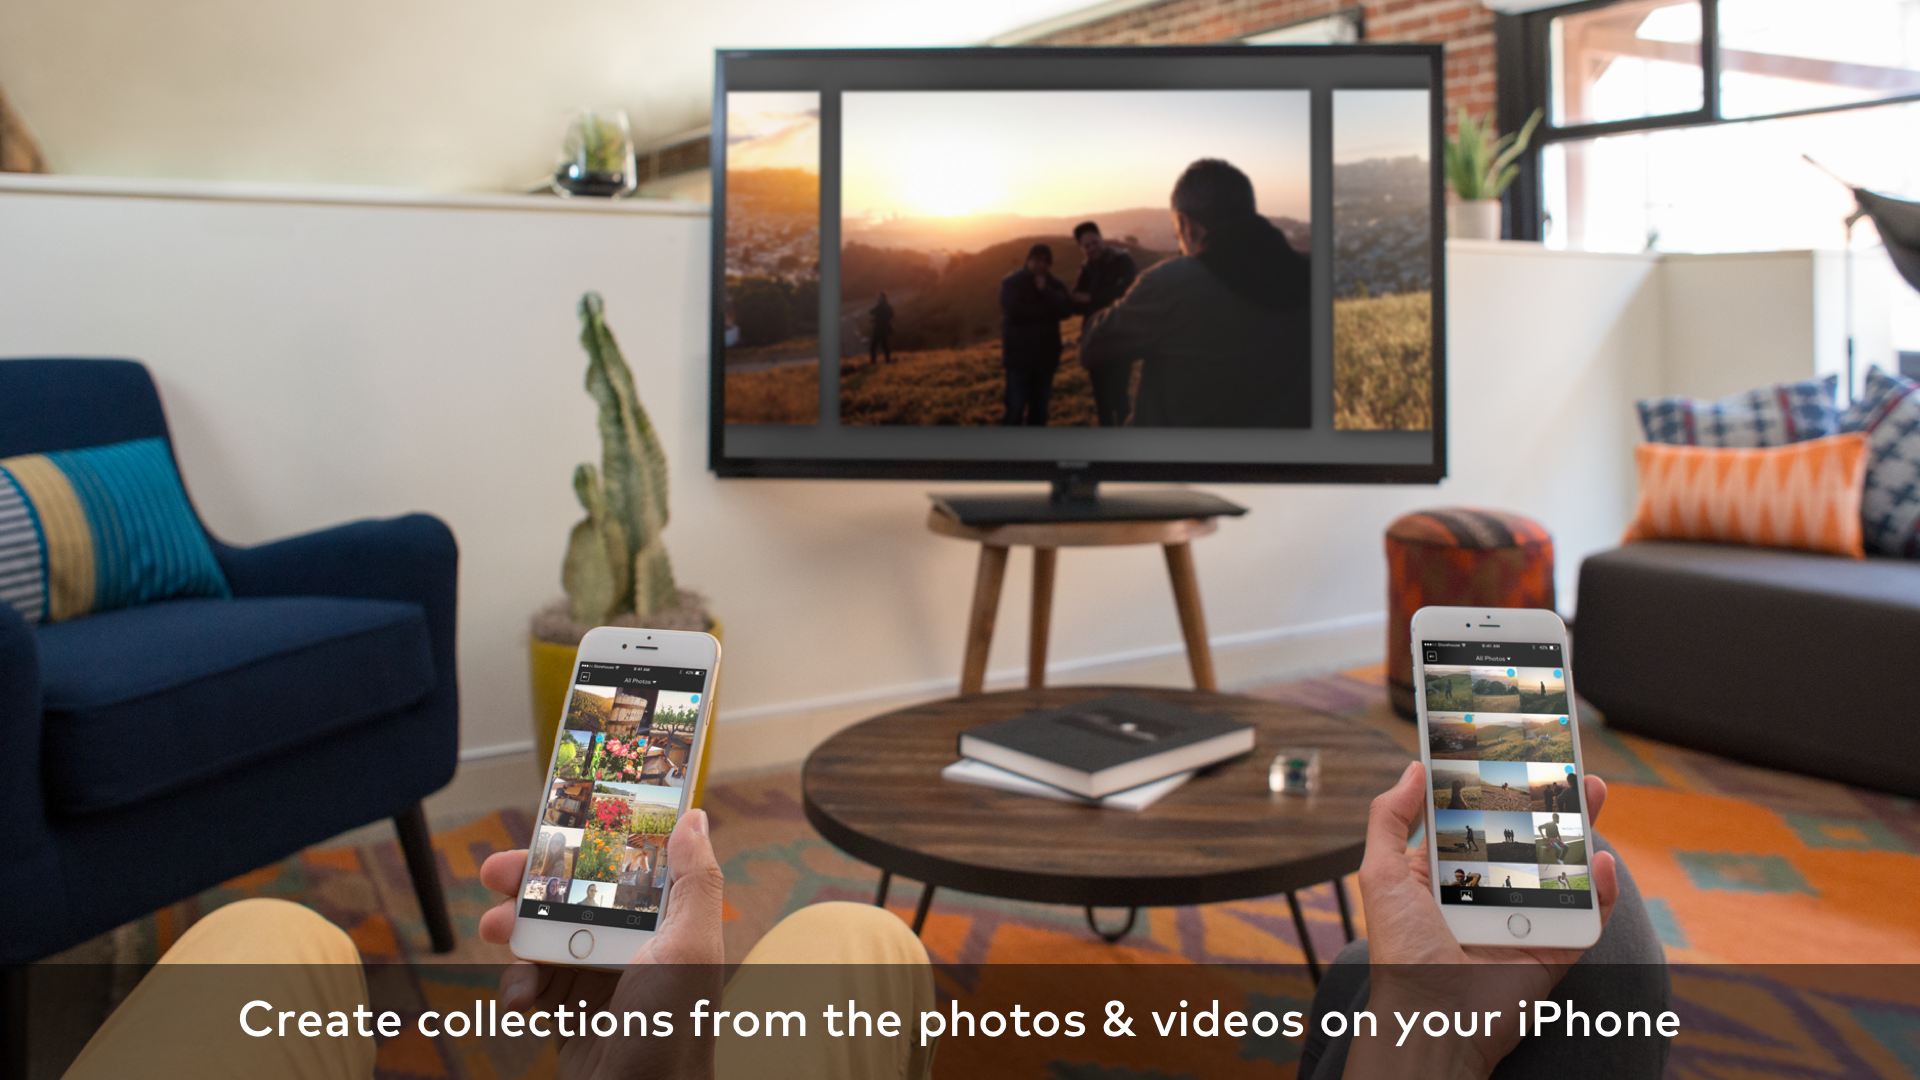 Storehouse - Photo & Video Collages, Stories, Albums screenshot 10